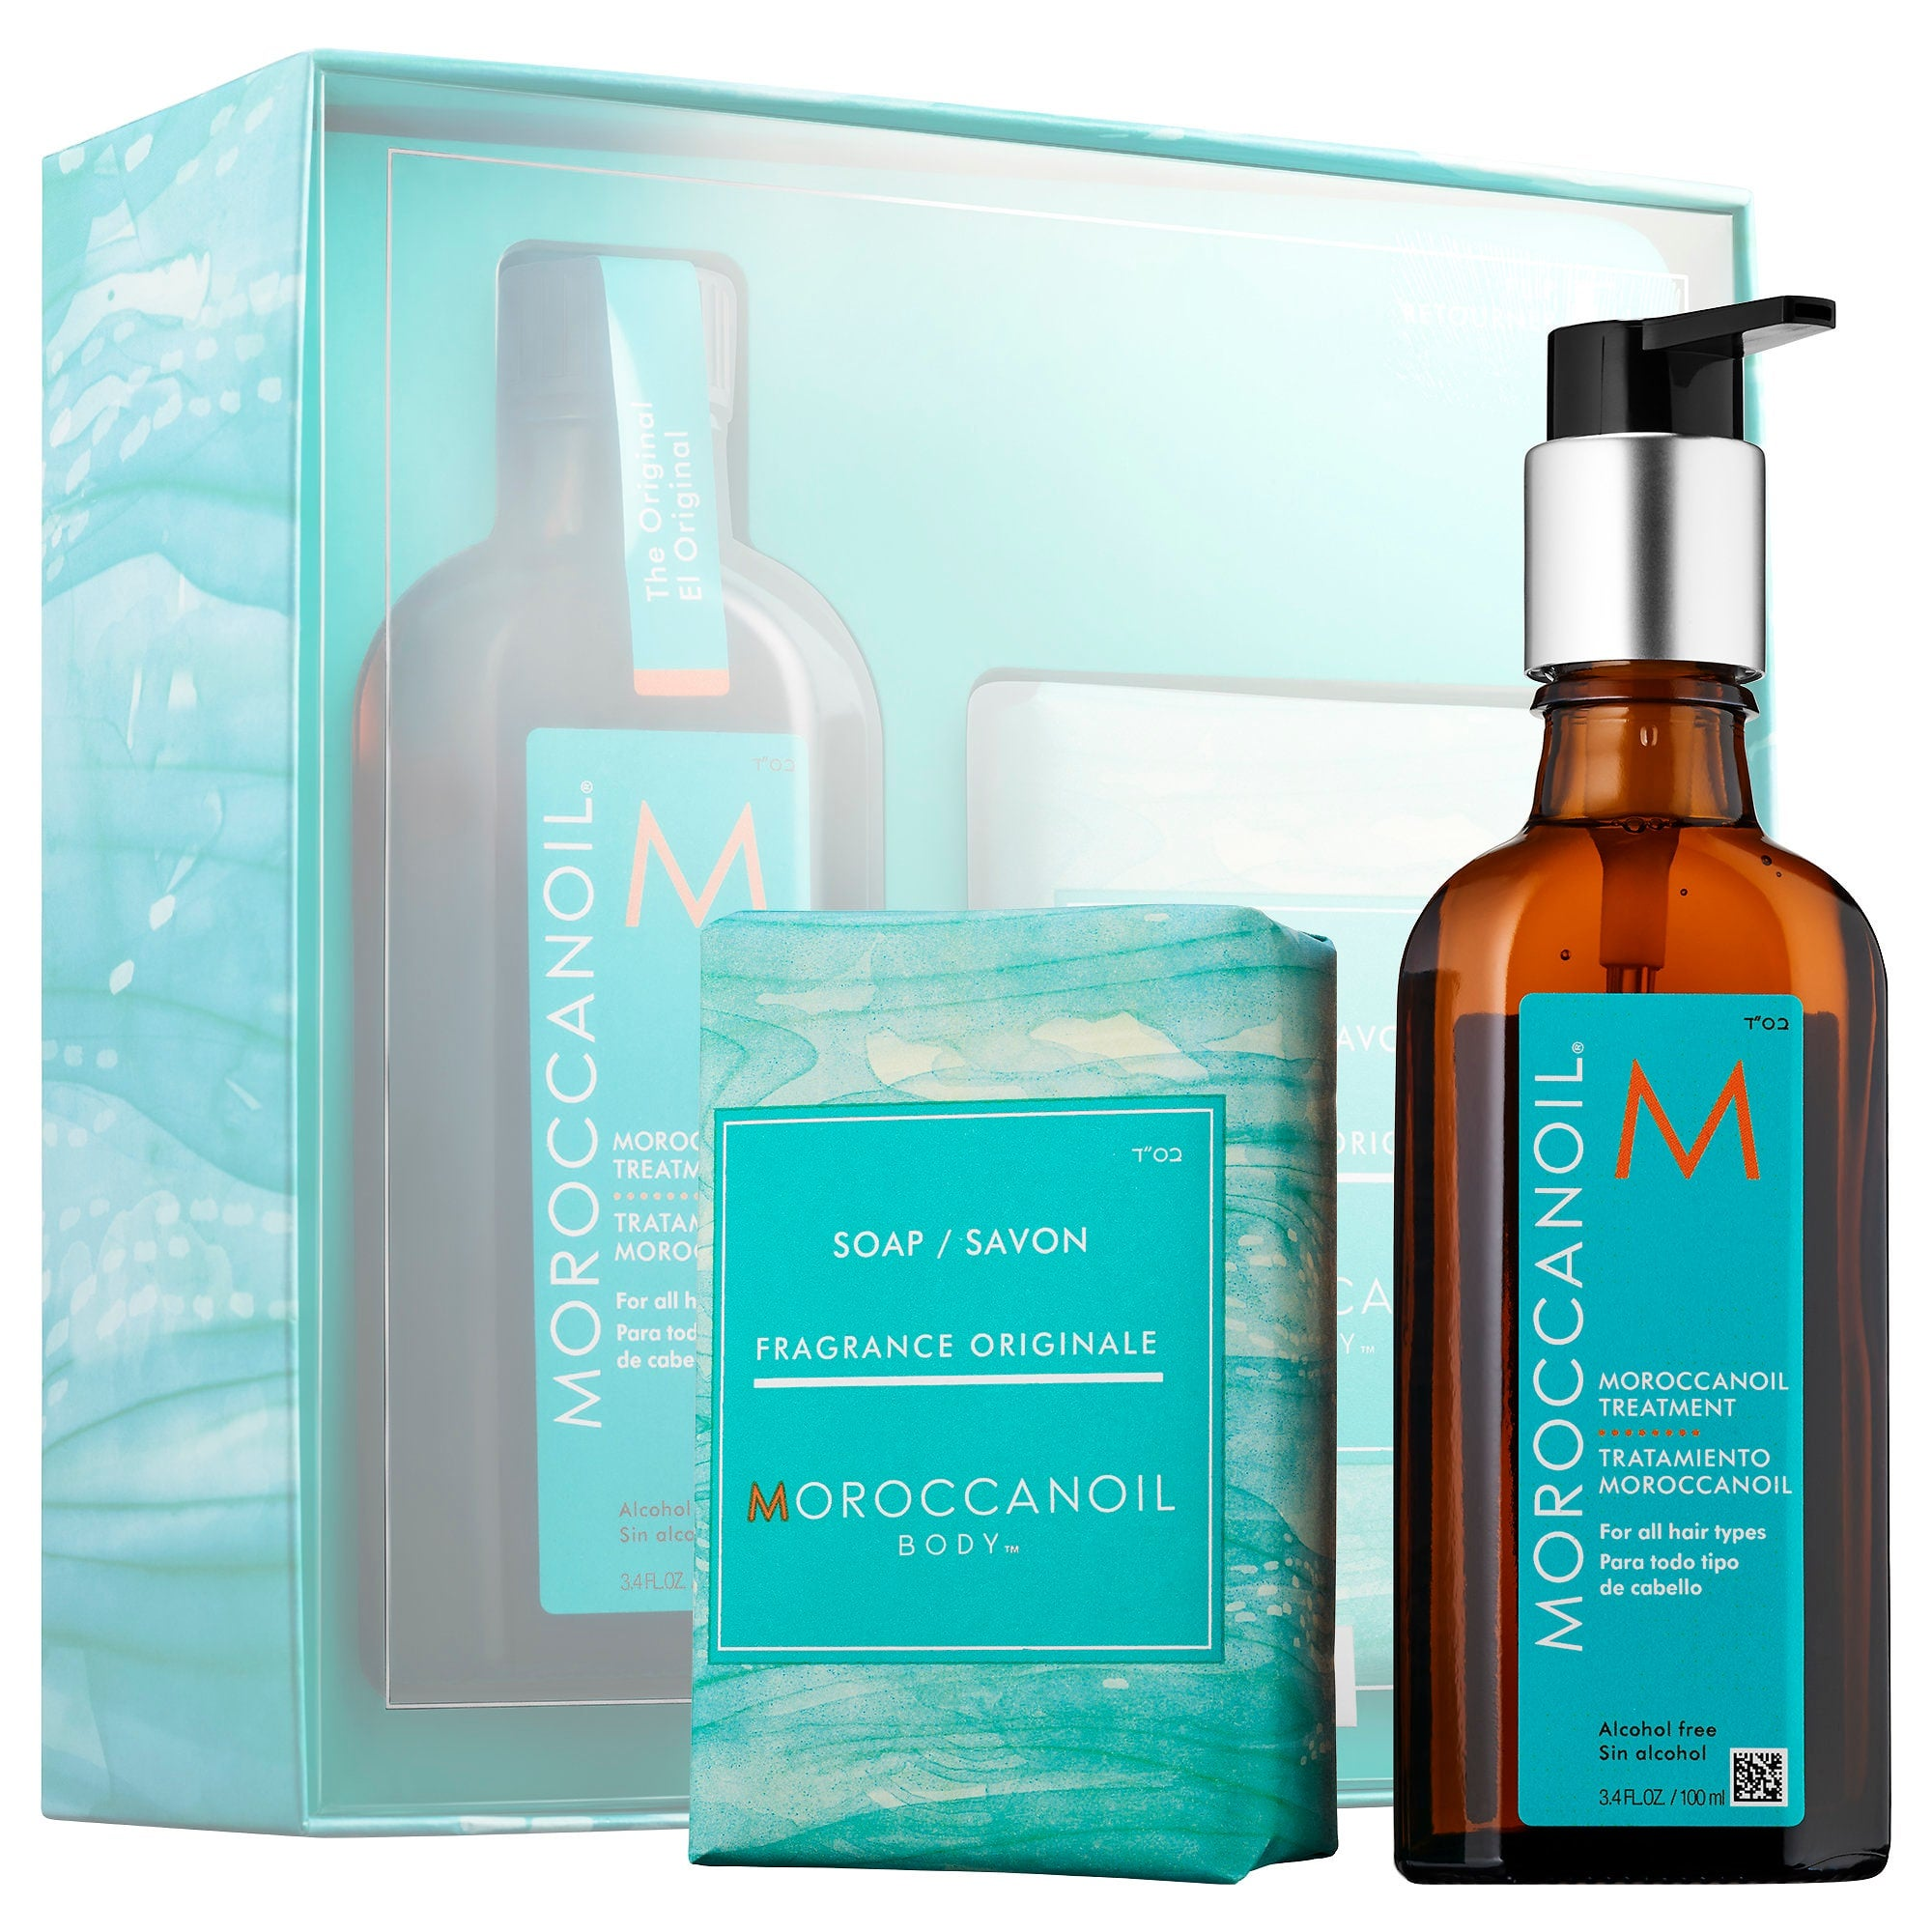 Moroccanoil Treatment & Body Soap